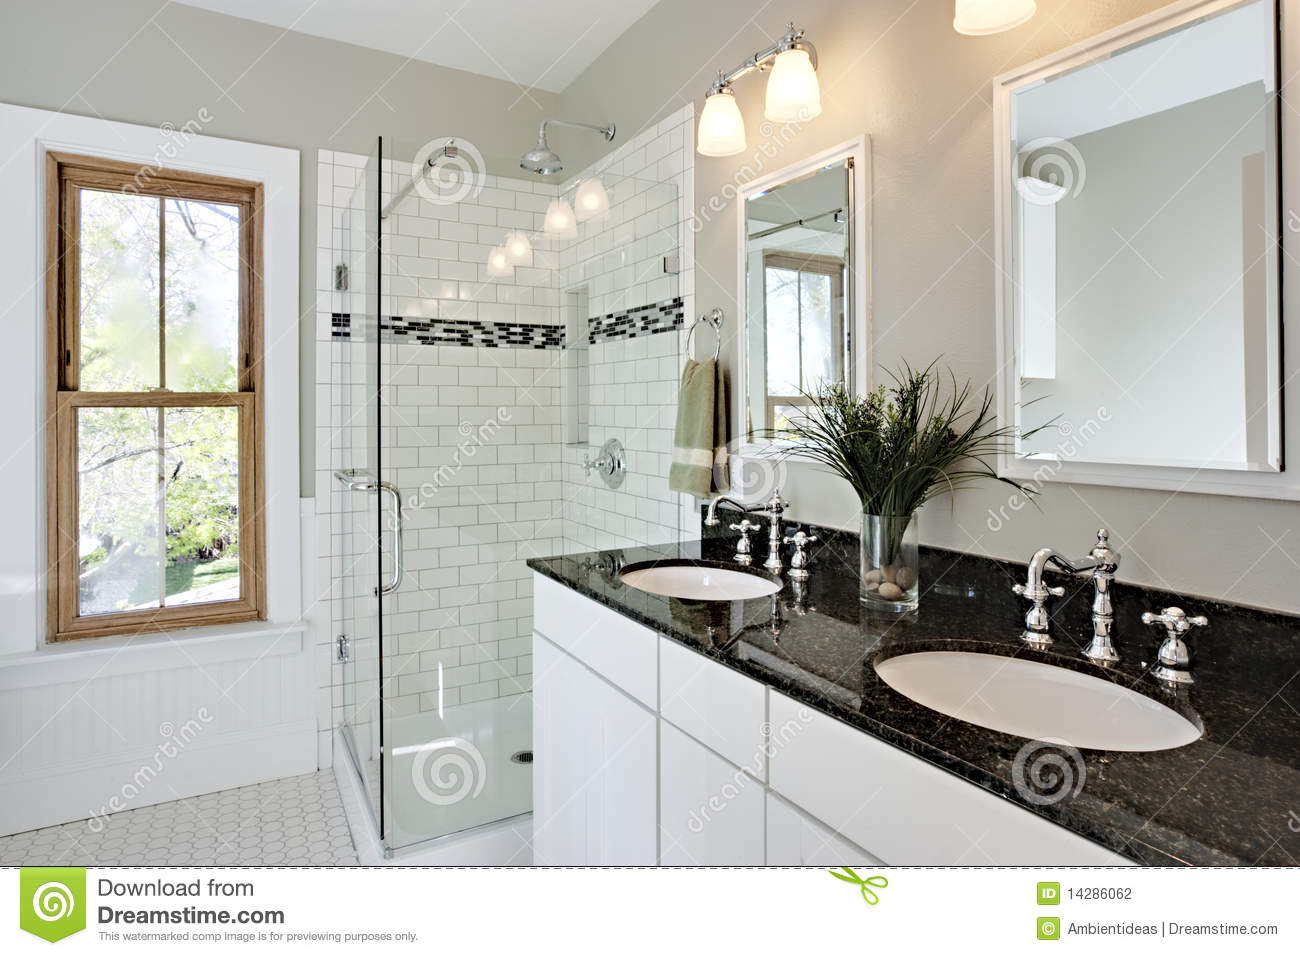 Bright white remodel bathroom stock photography image for White bathroom remodel pictures